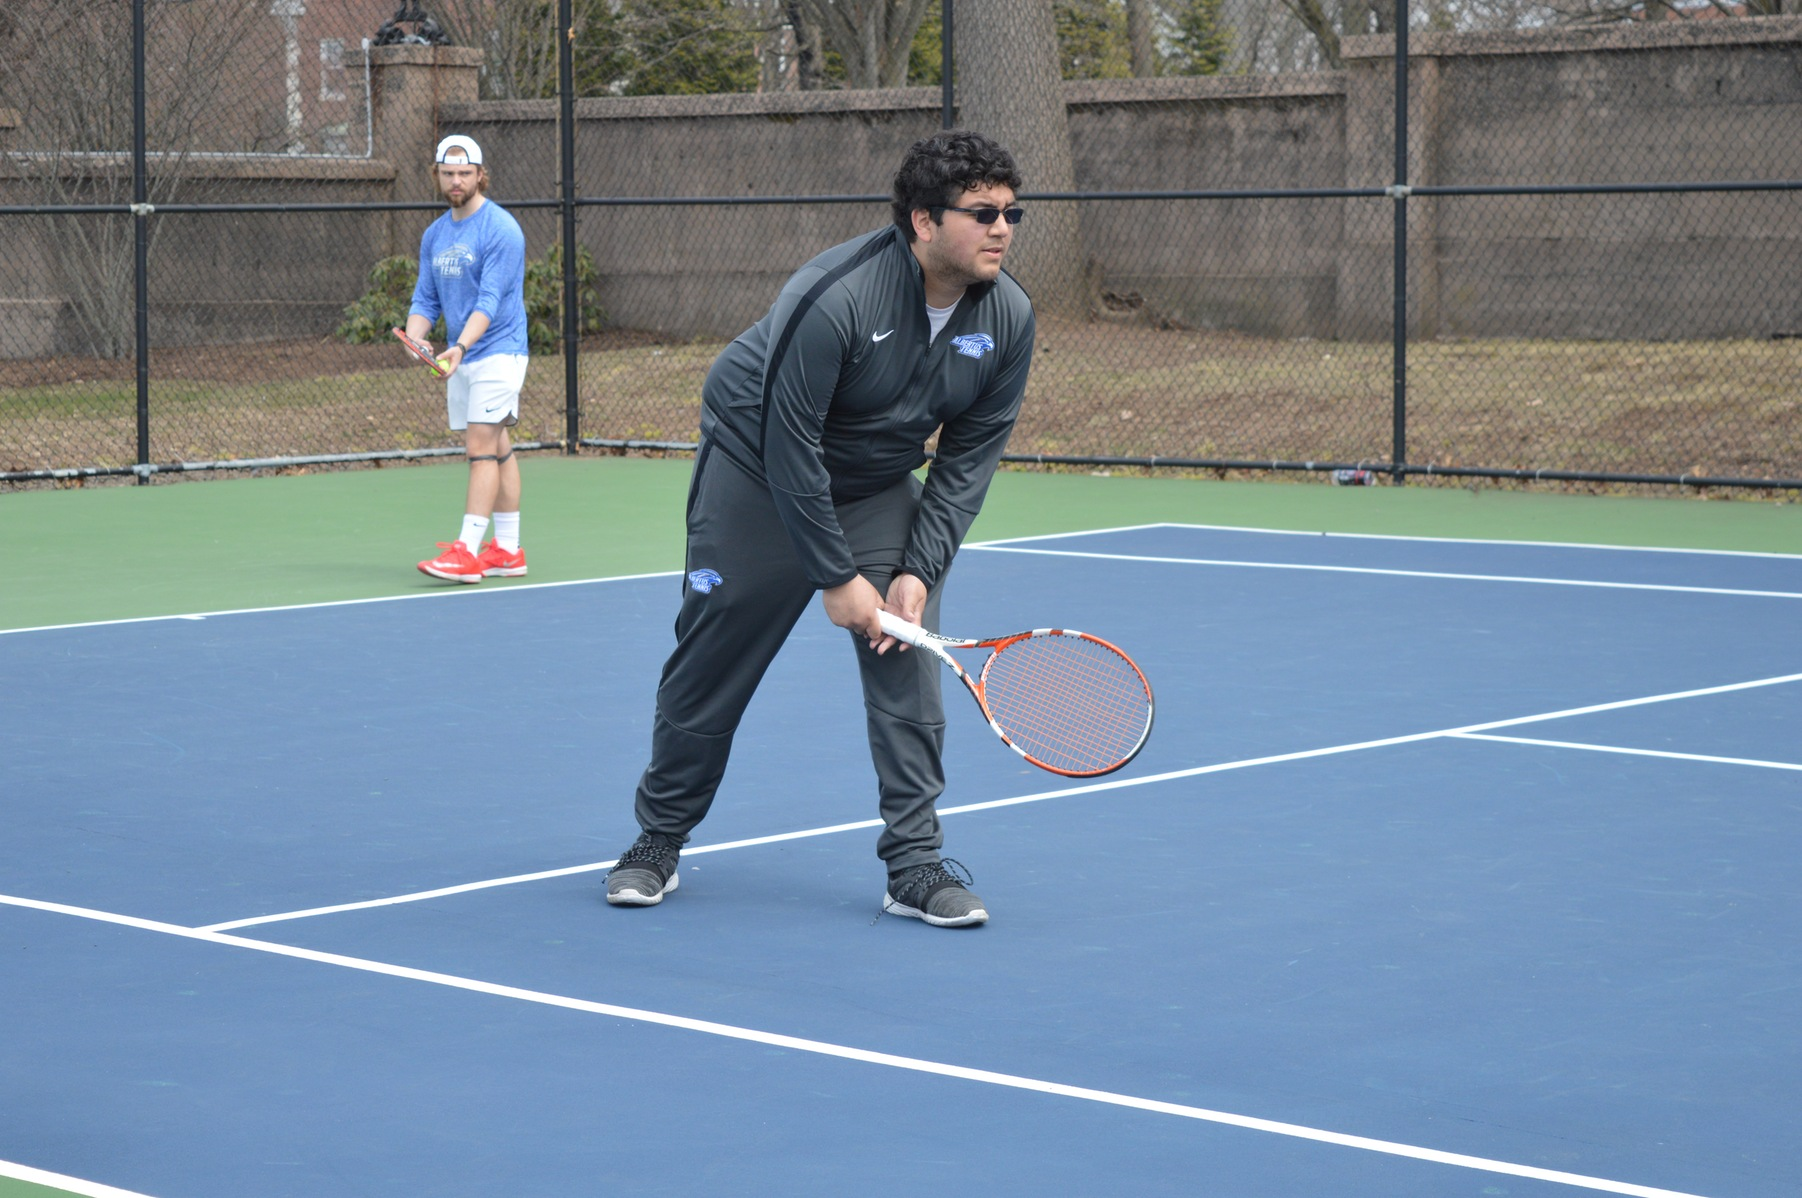 Men's Tennis Loses to Rutgers-Newark, 9-0, in Conference Play